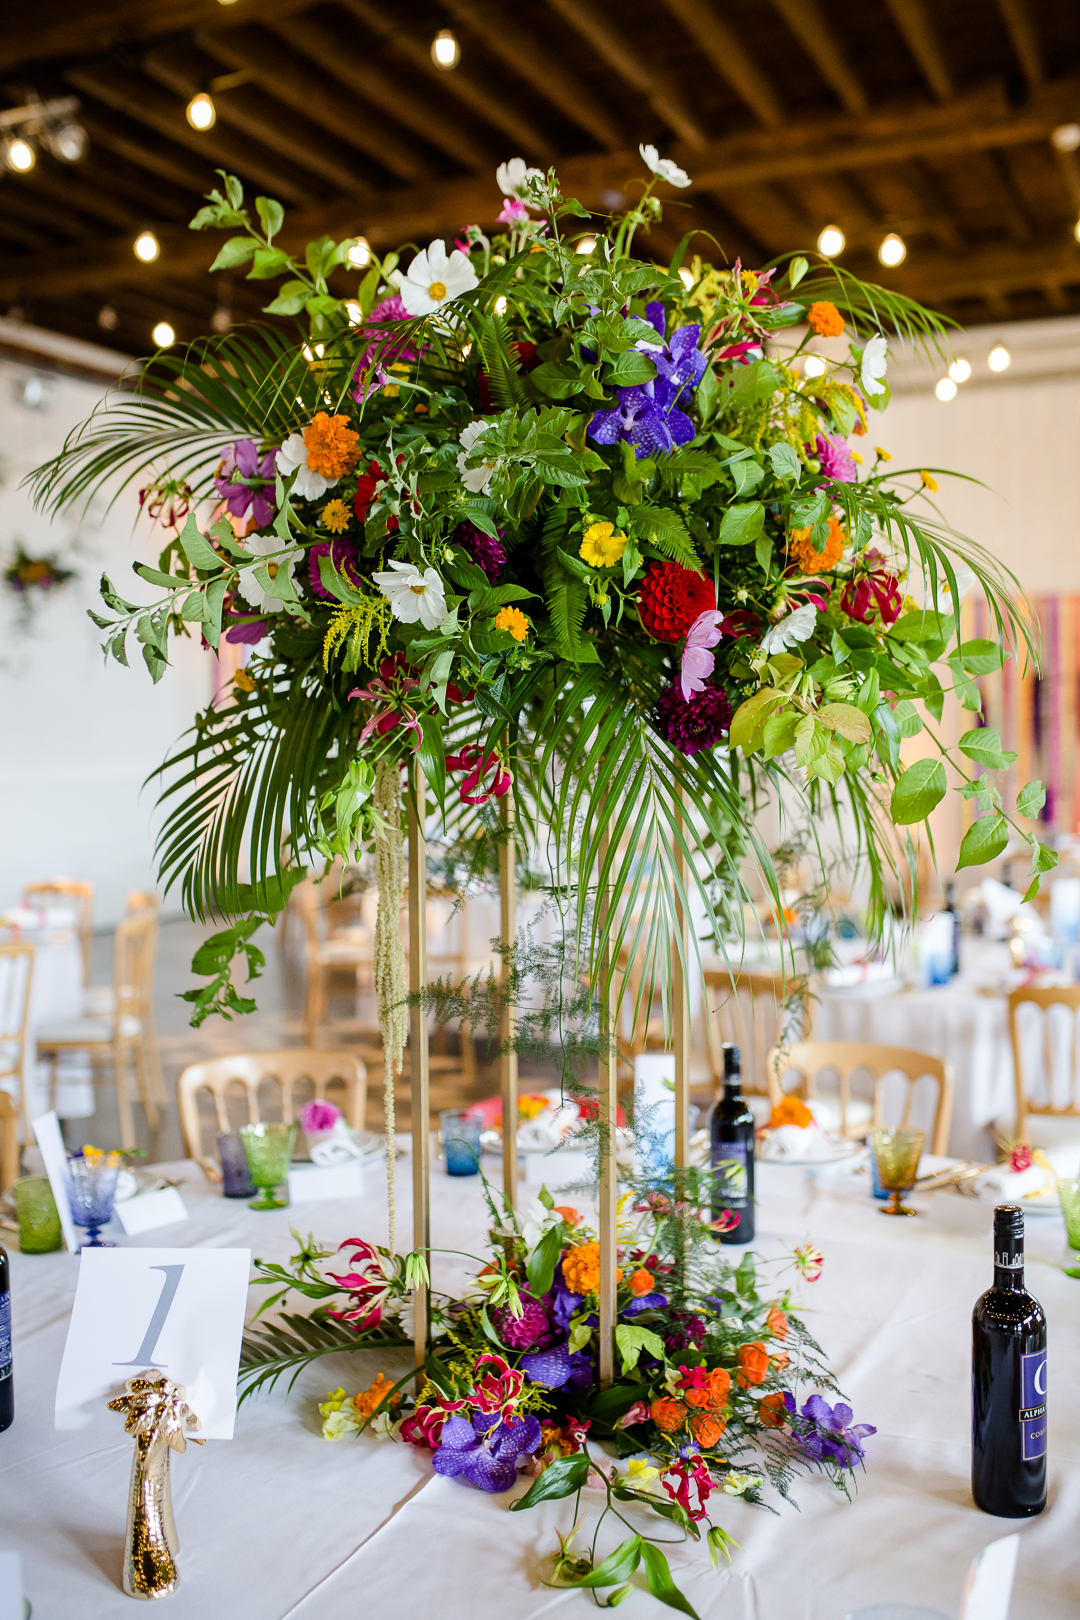 Colourful and tropical wedding flower centrepiece by Rust & Bloom at Trinity Bouy Wharf London